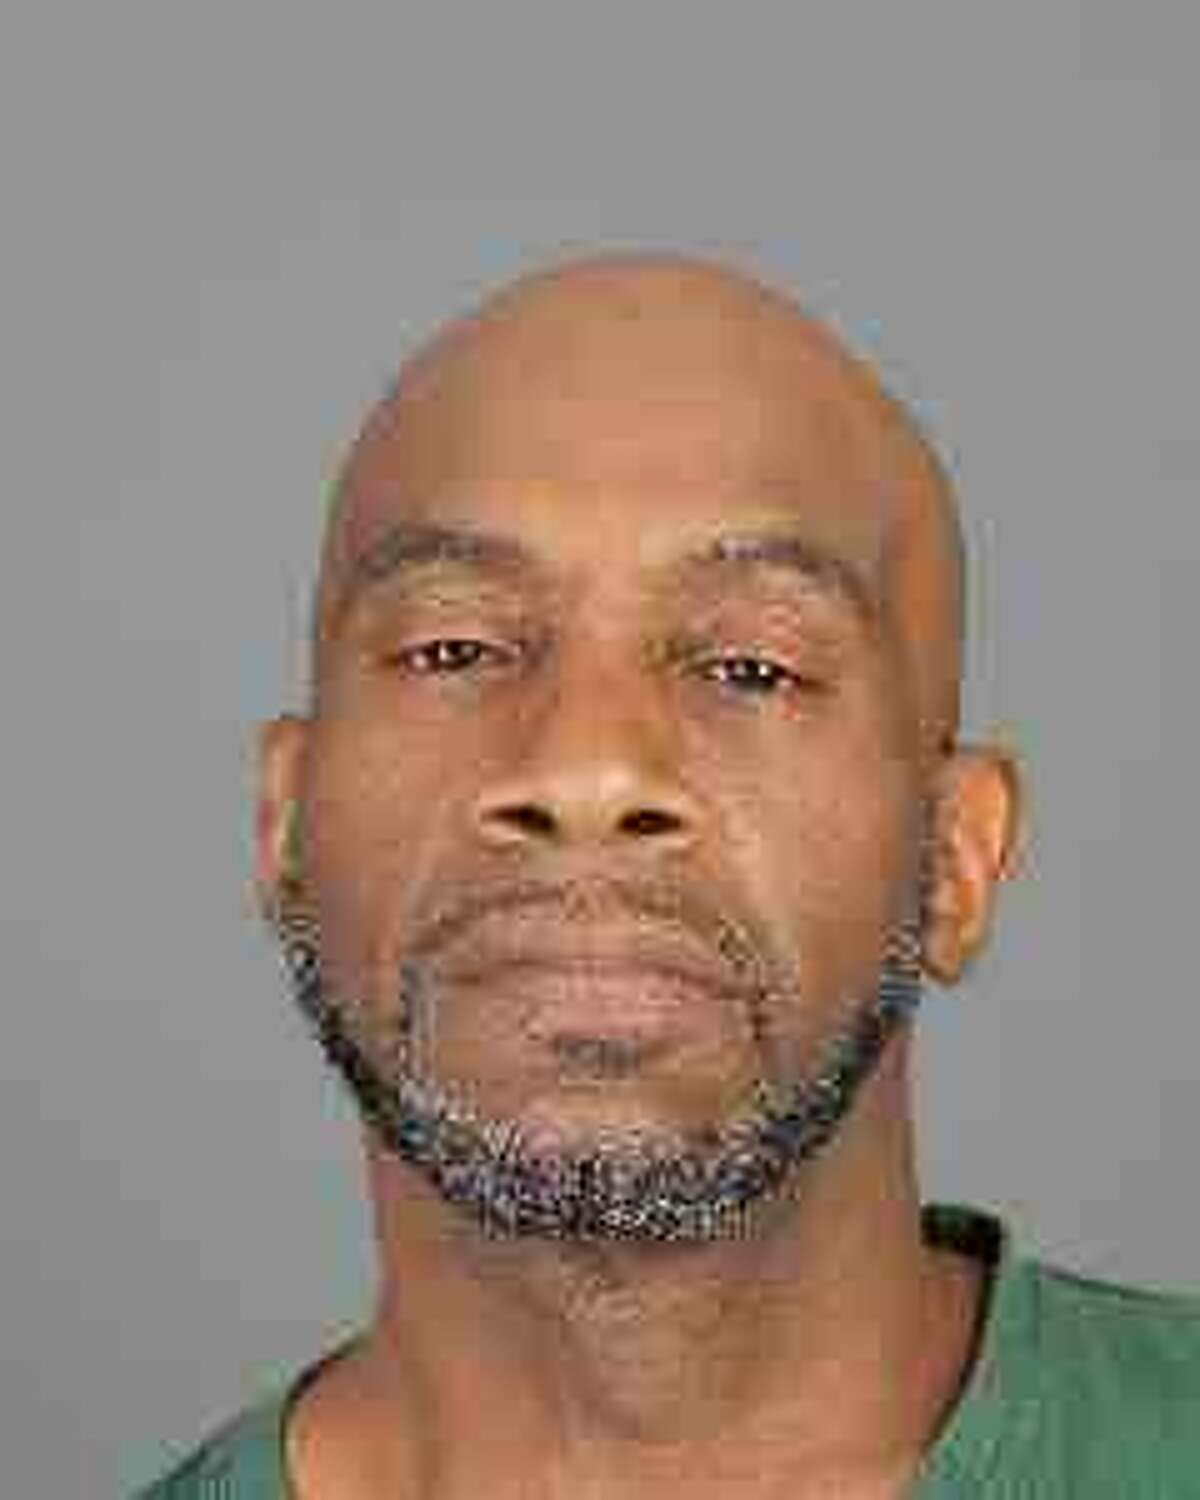 Gregorie Smith, 54, was charged Saturday night after accidentally shooting his daughter, Albany police said.